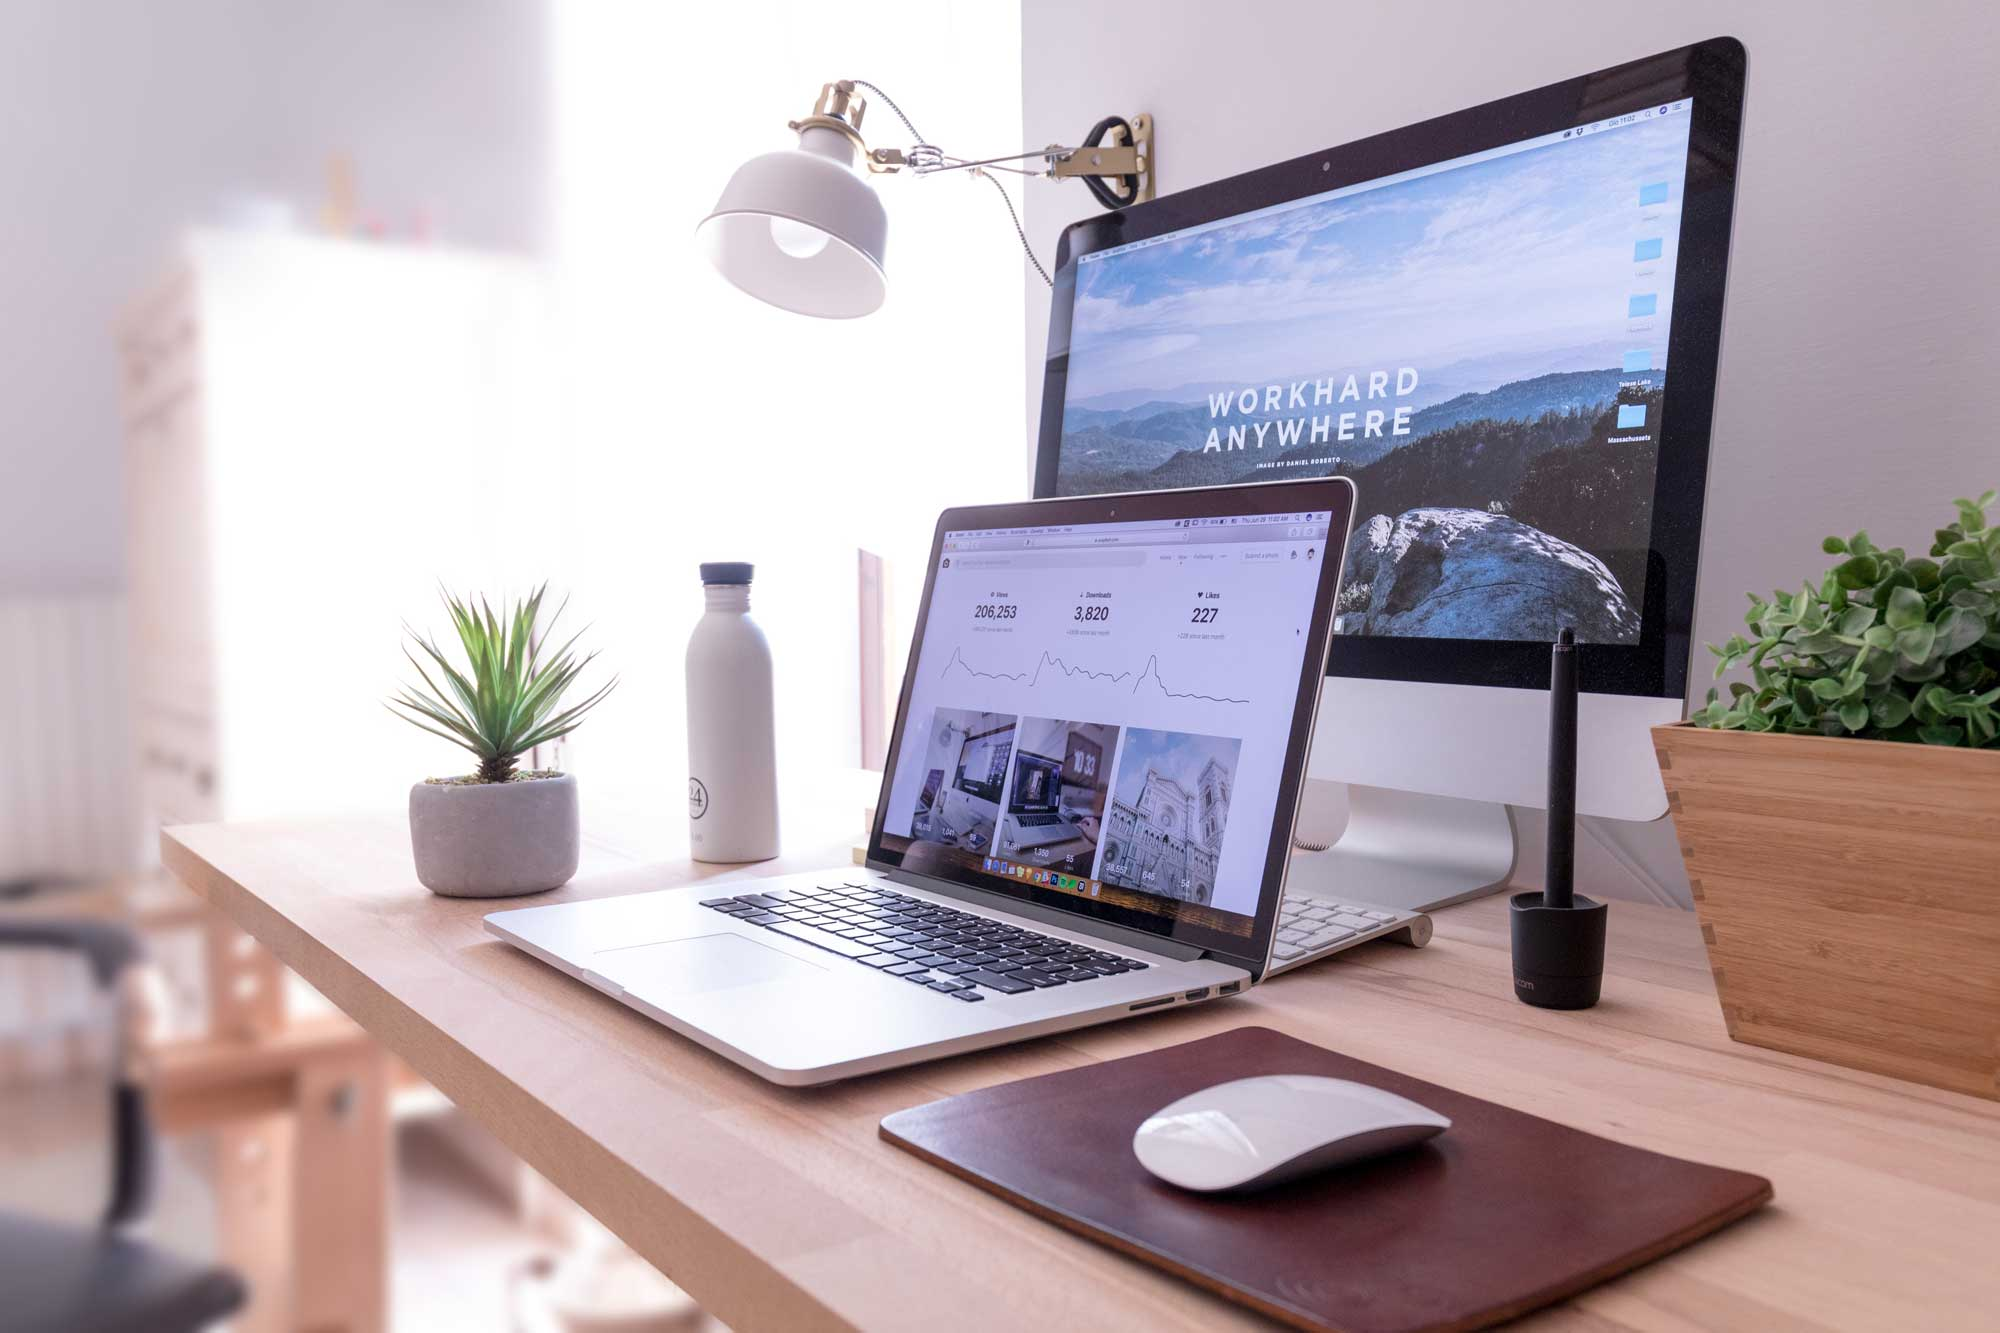 How to Reduce Clutter on Your Home Office Desk